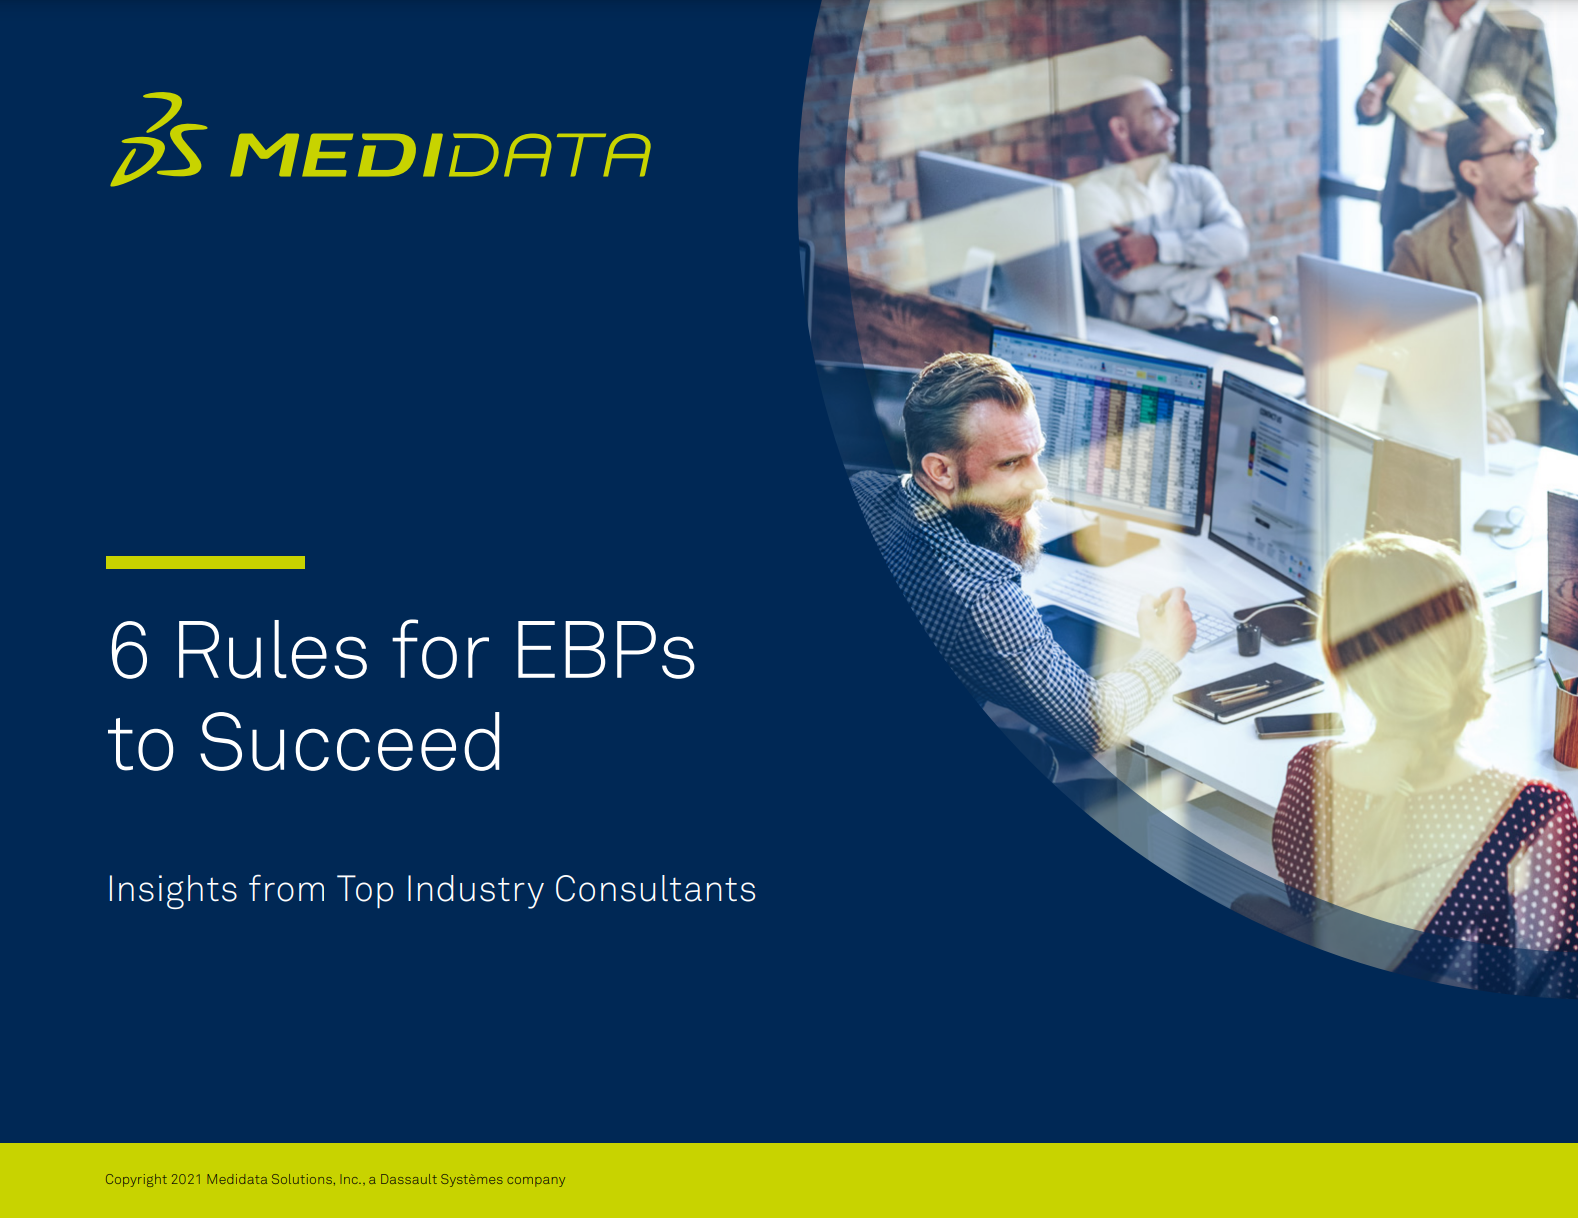 <strong>6 Rules for EBPs to Succeed</strong><br>Insights from Top Industry Consultants